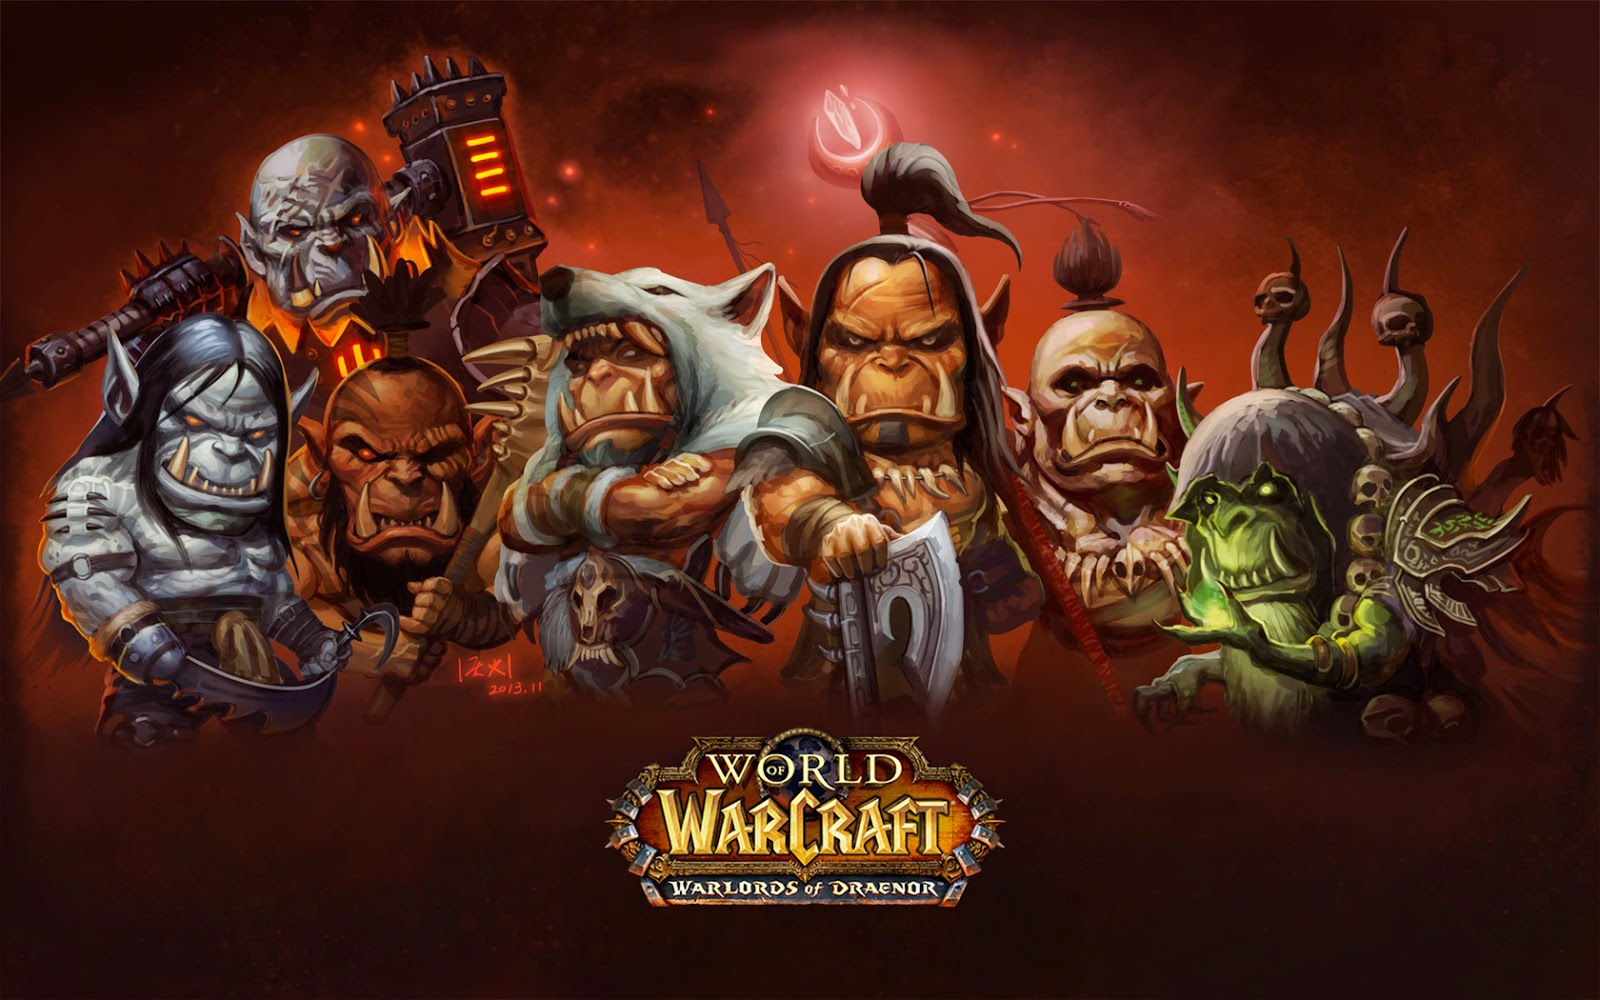 Warlords of Draenor Expansion.